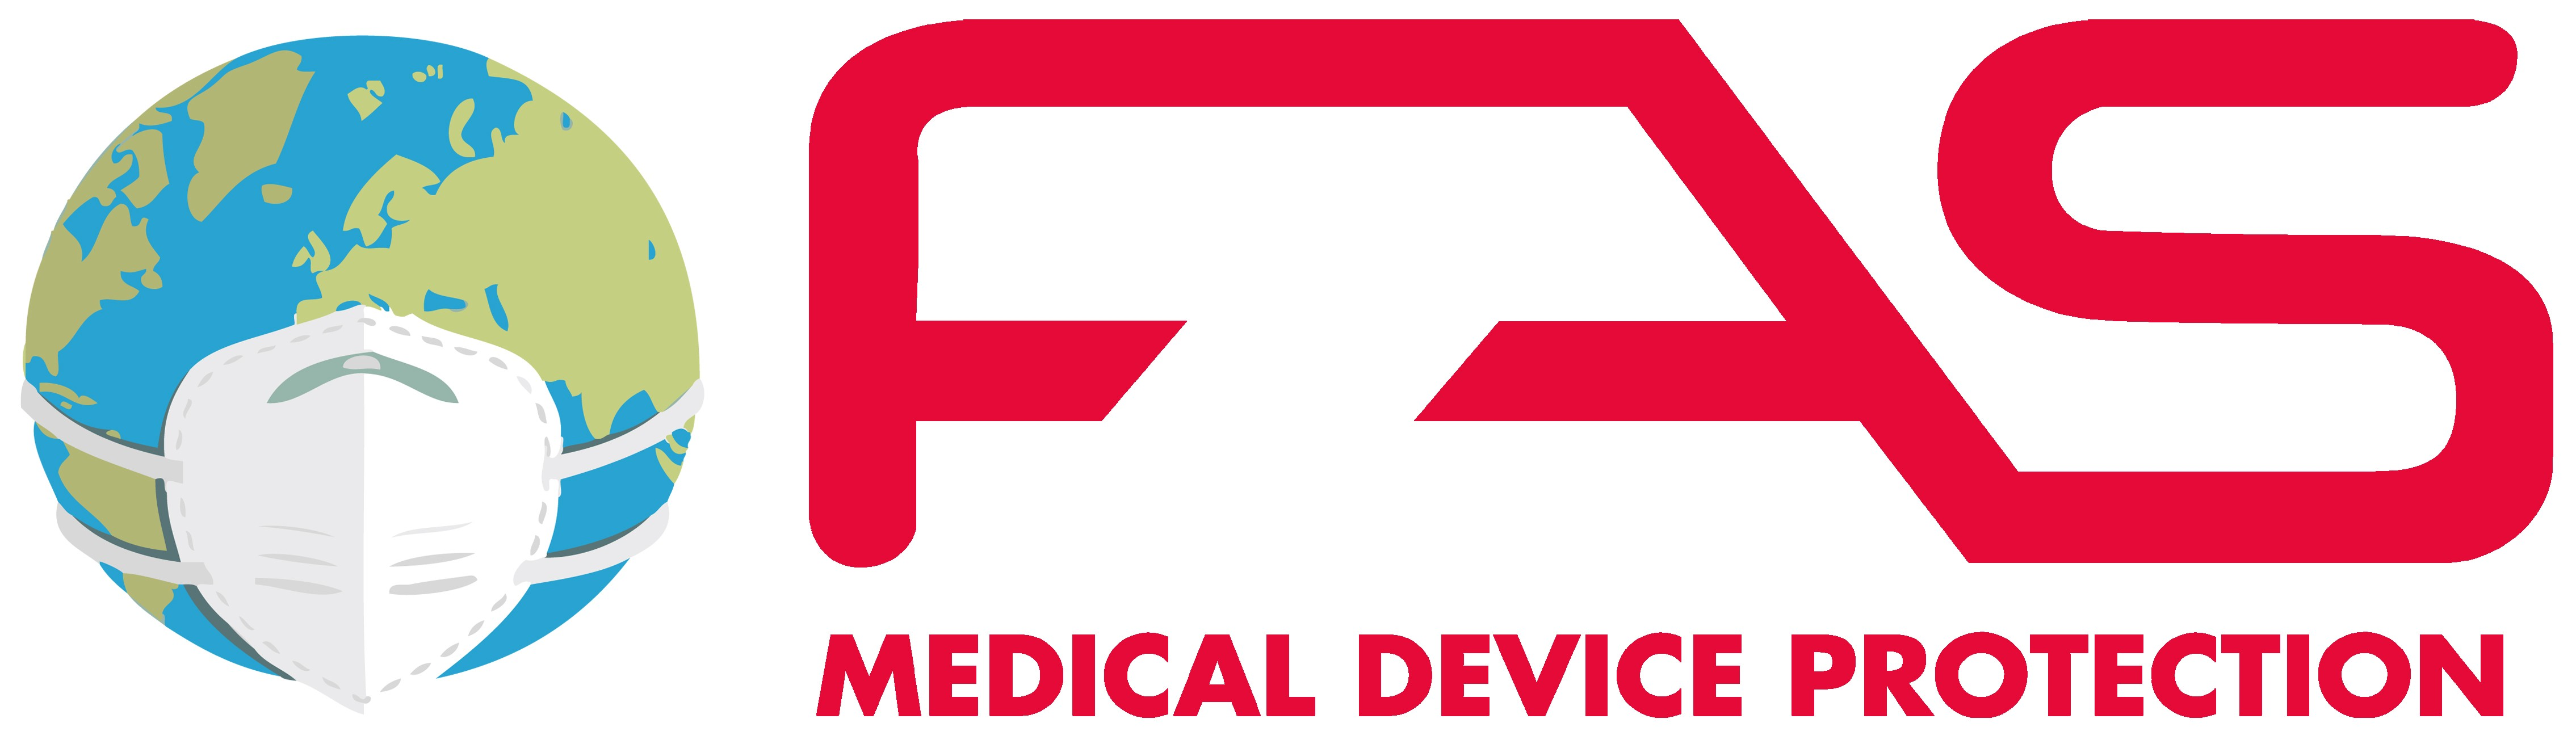 Fas Medical Device